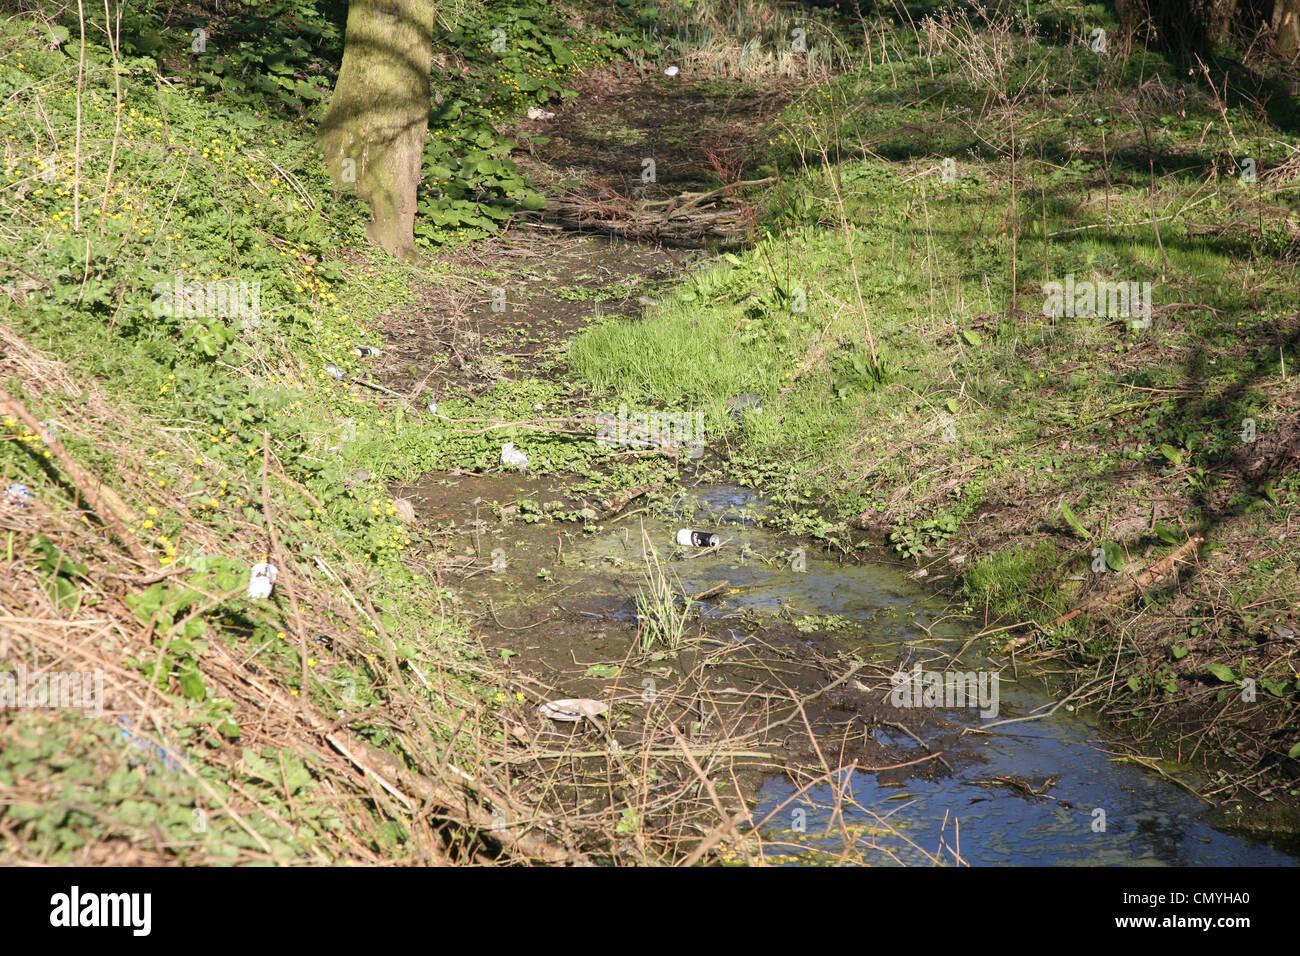 a stream in loughborough that is drying up due to drought - Stock Image